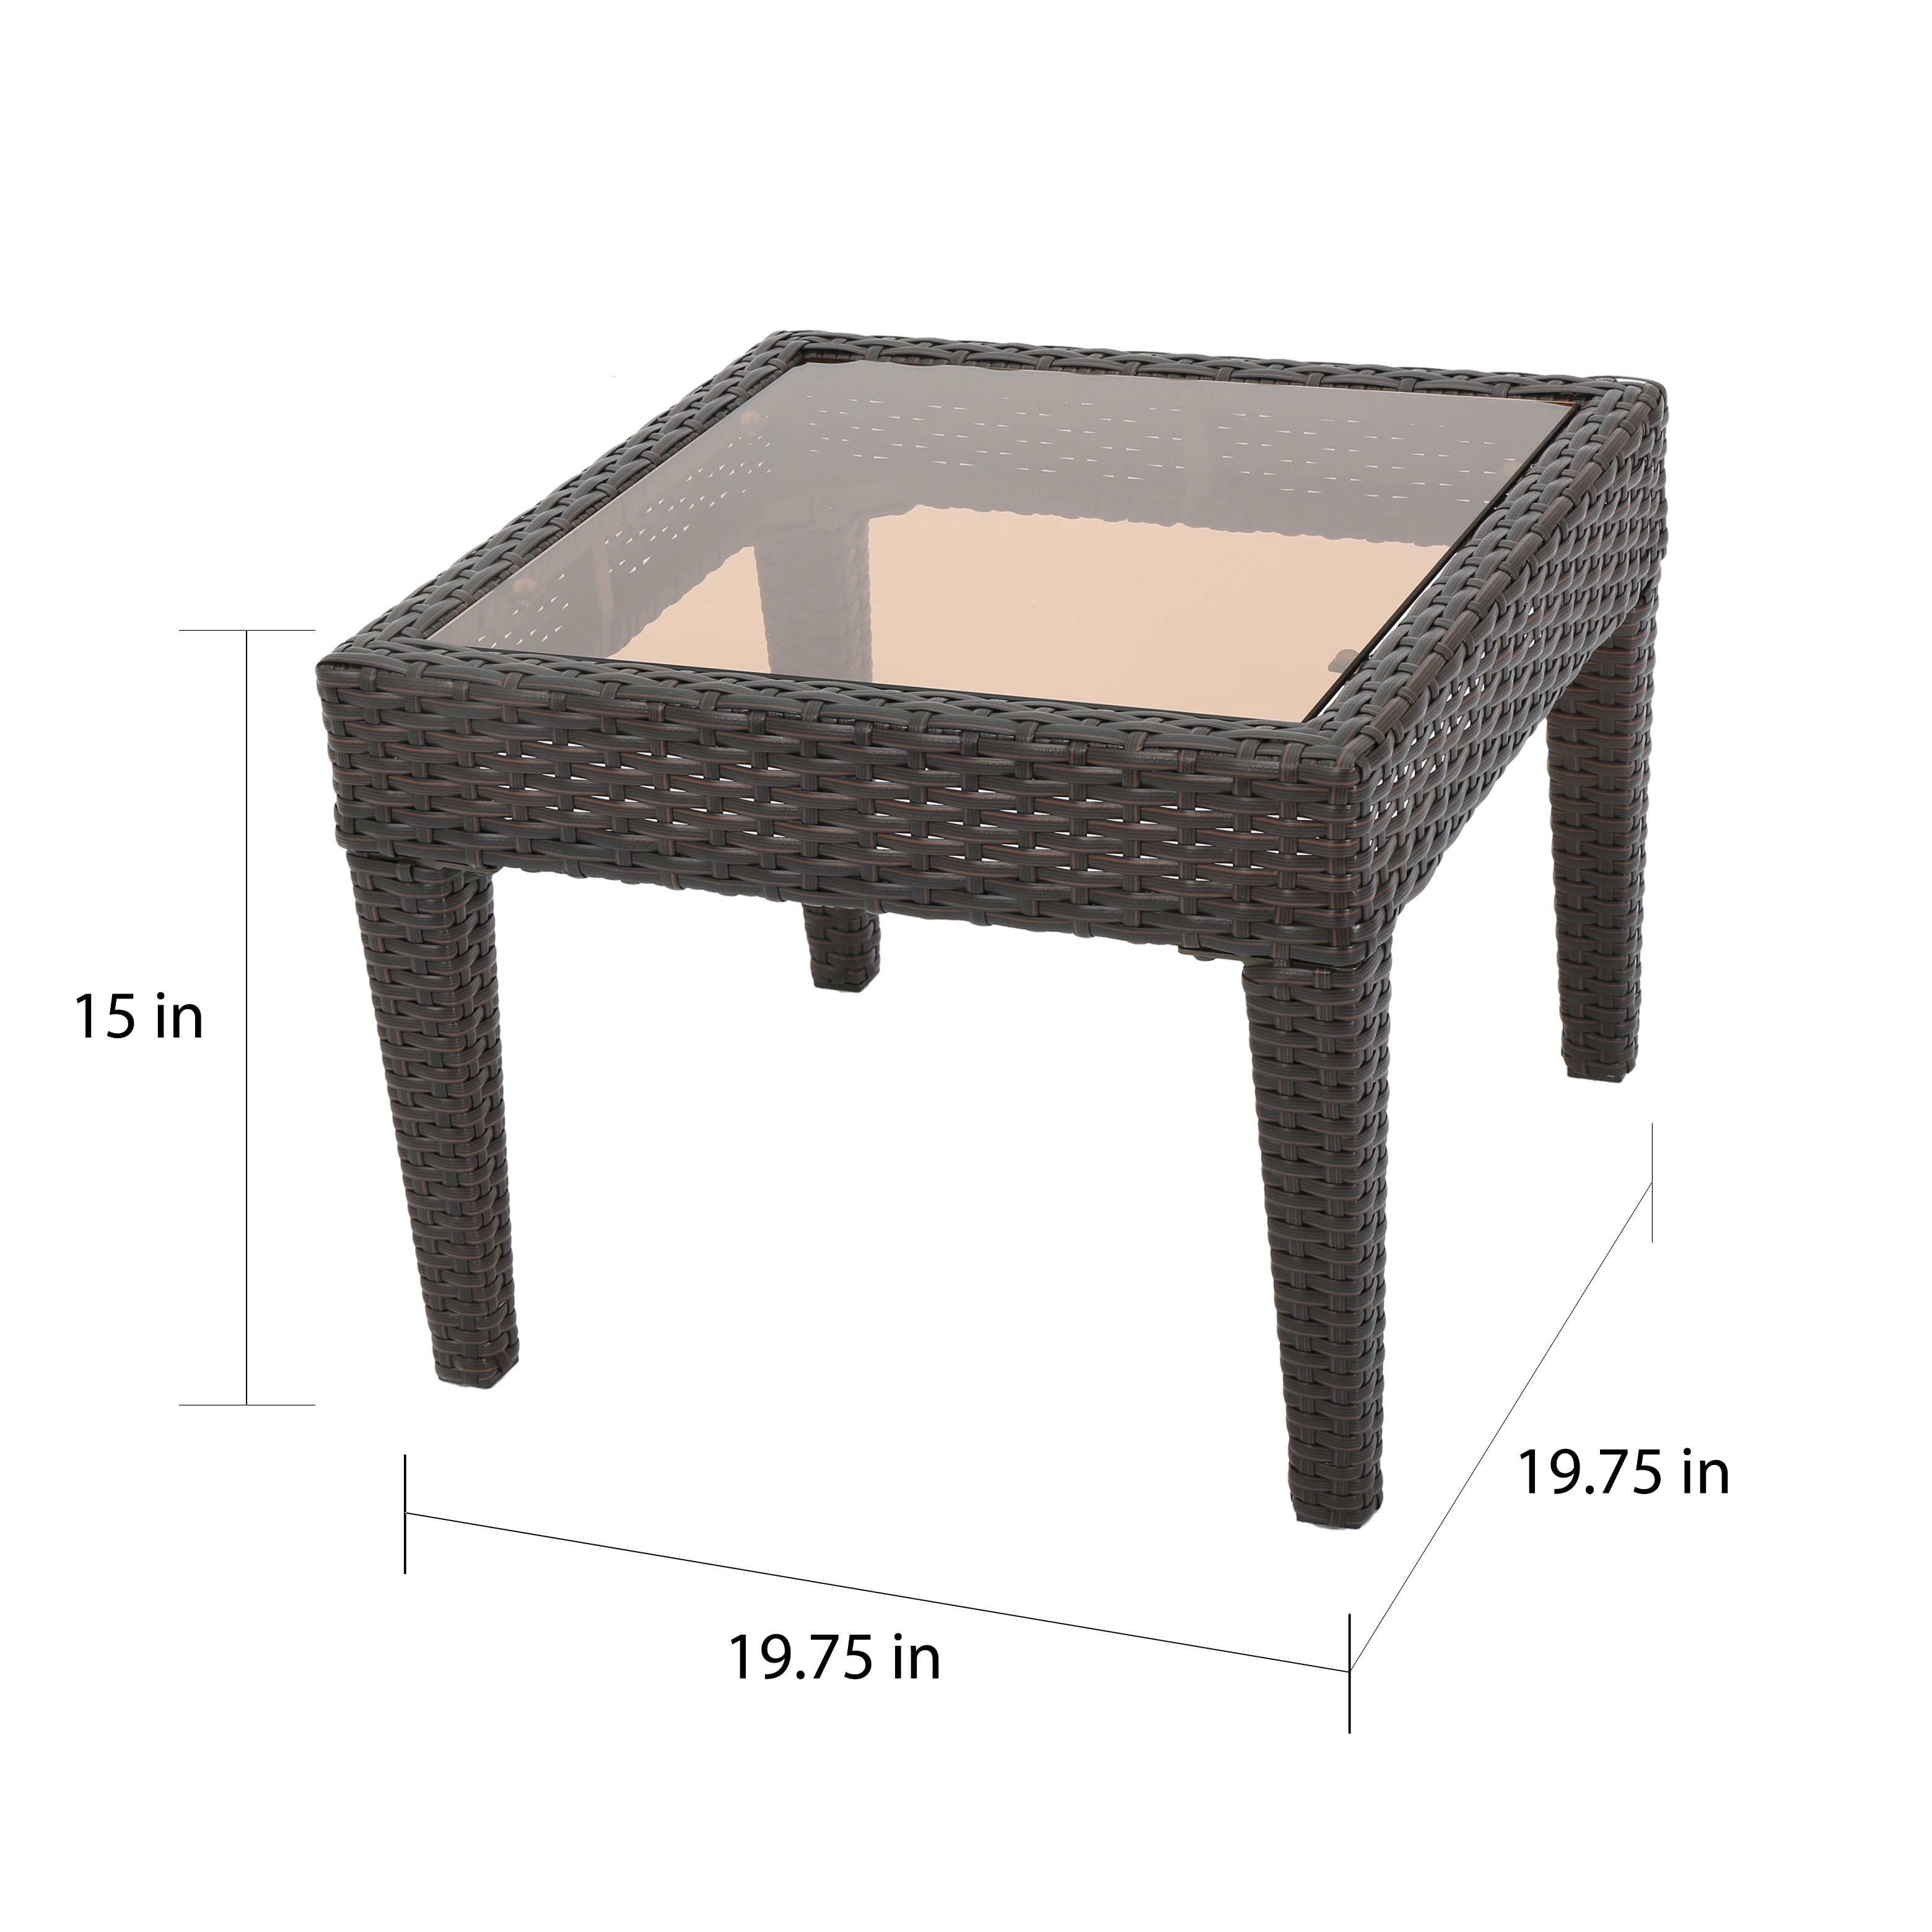 outdoor antibes wicker side table christopher knight home free shipping today wedding covers with basket drawers sets hairpin furniture legs bar height wood rose gold tudor